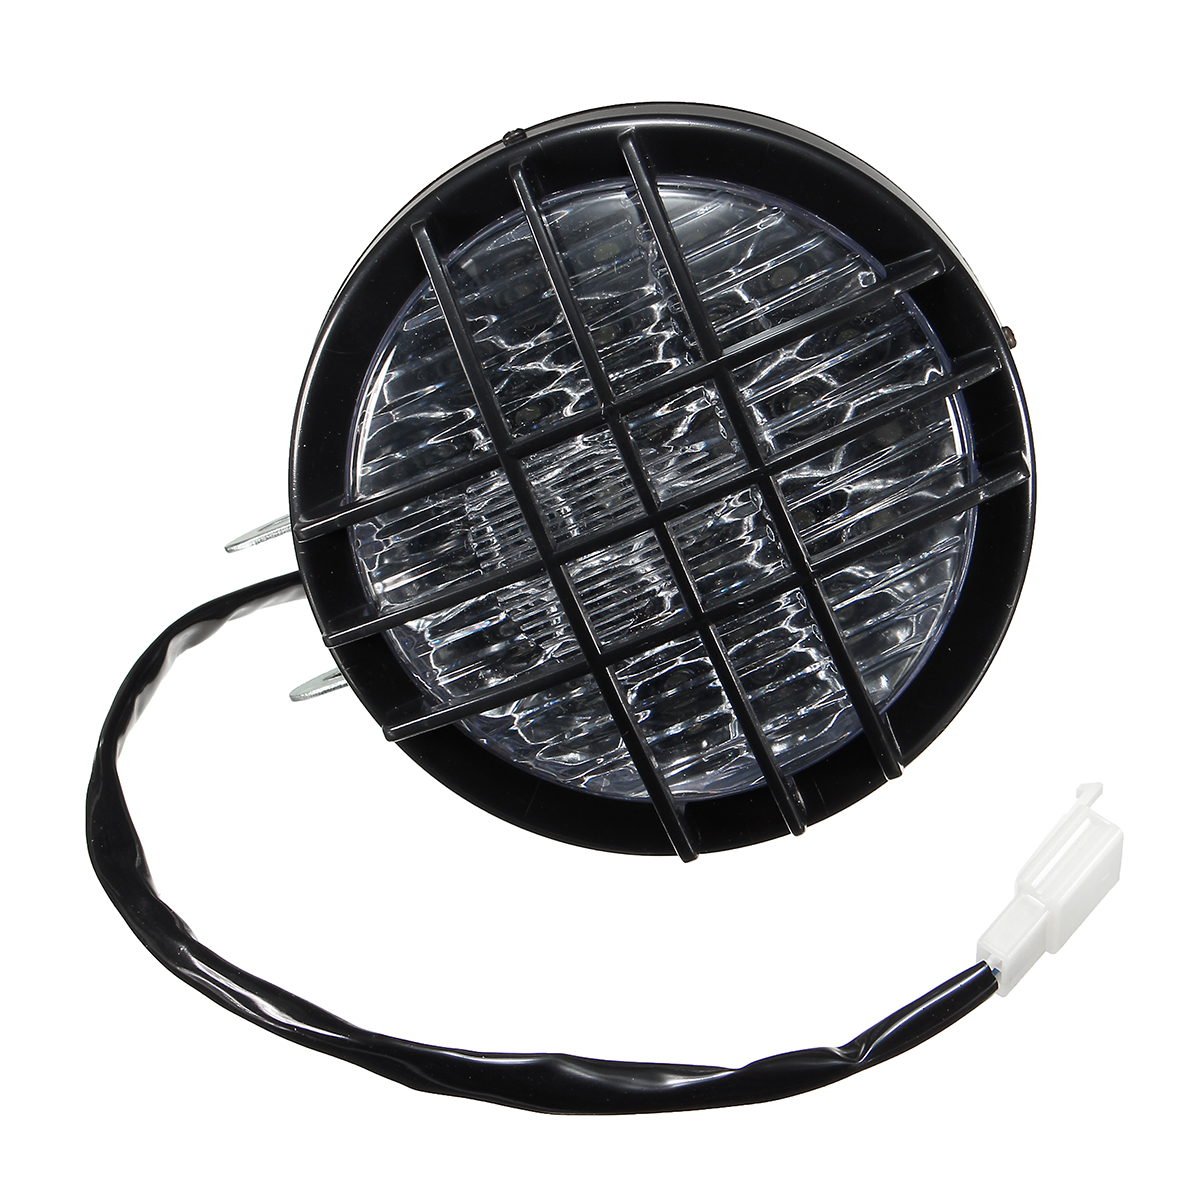 5inch LED Motorcycle Grill Headlight Headlamp Light For Harley Chopper Bobber